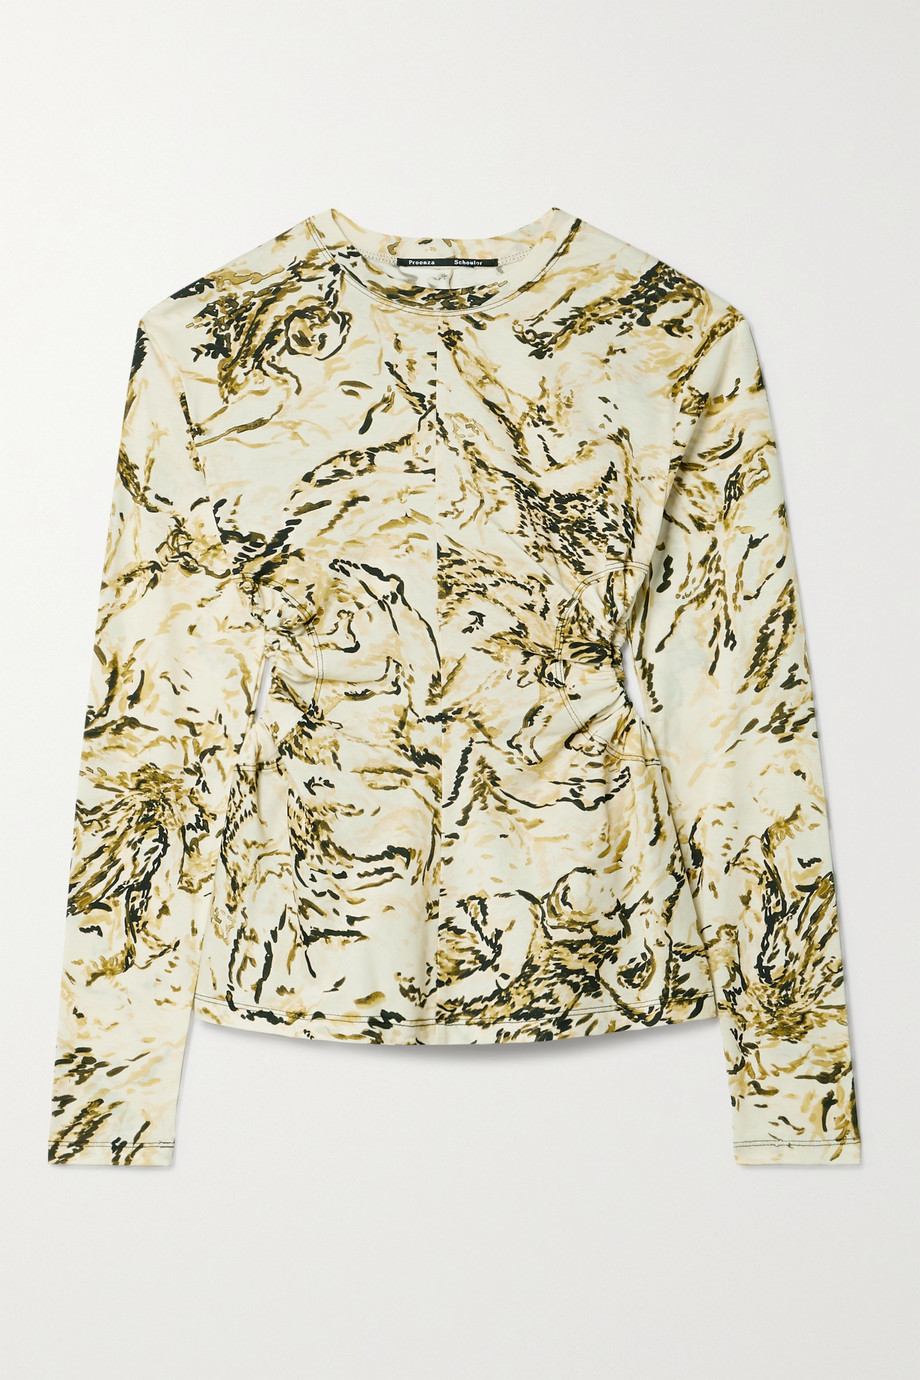 Proenza Schouler Cutout printed cotton-jersey top